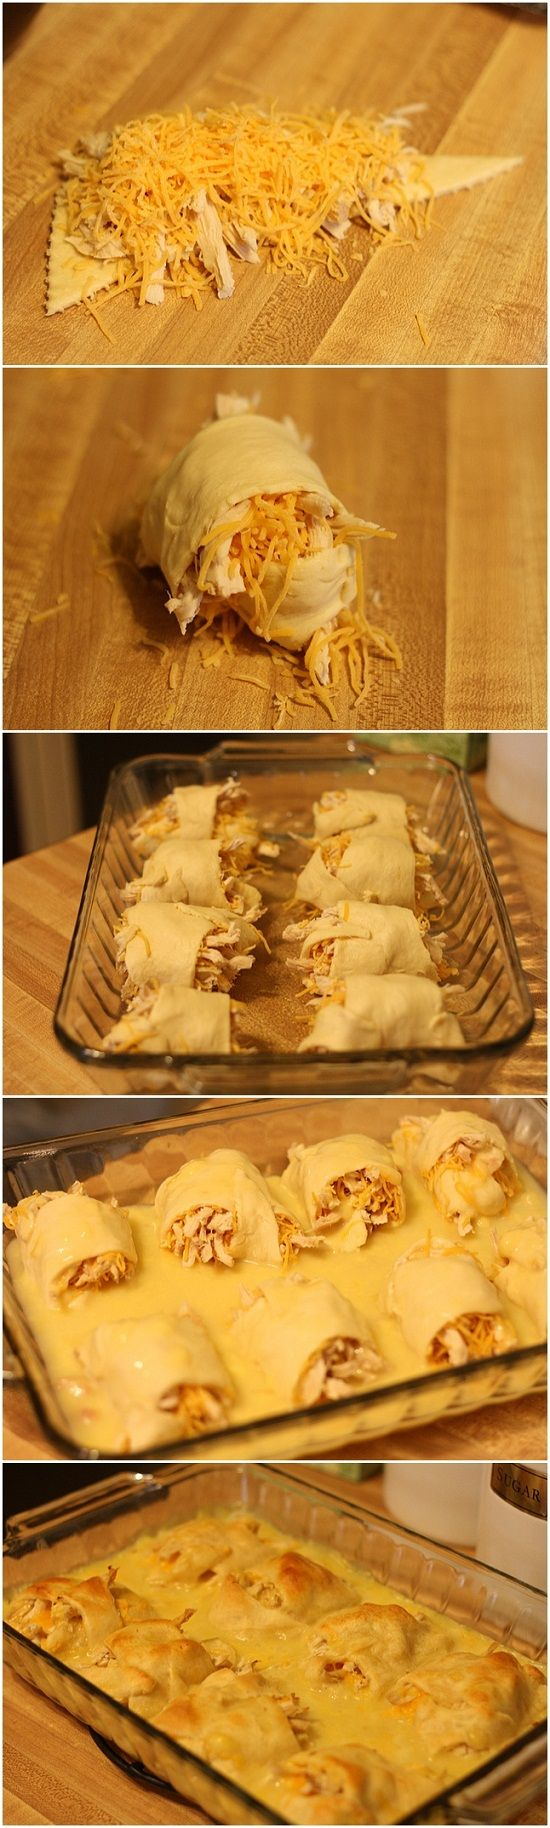 This looks AMAZING!! Crescent wrapped shredded chicken and cheese receipe!